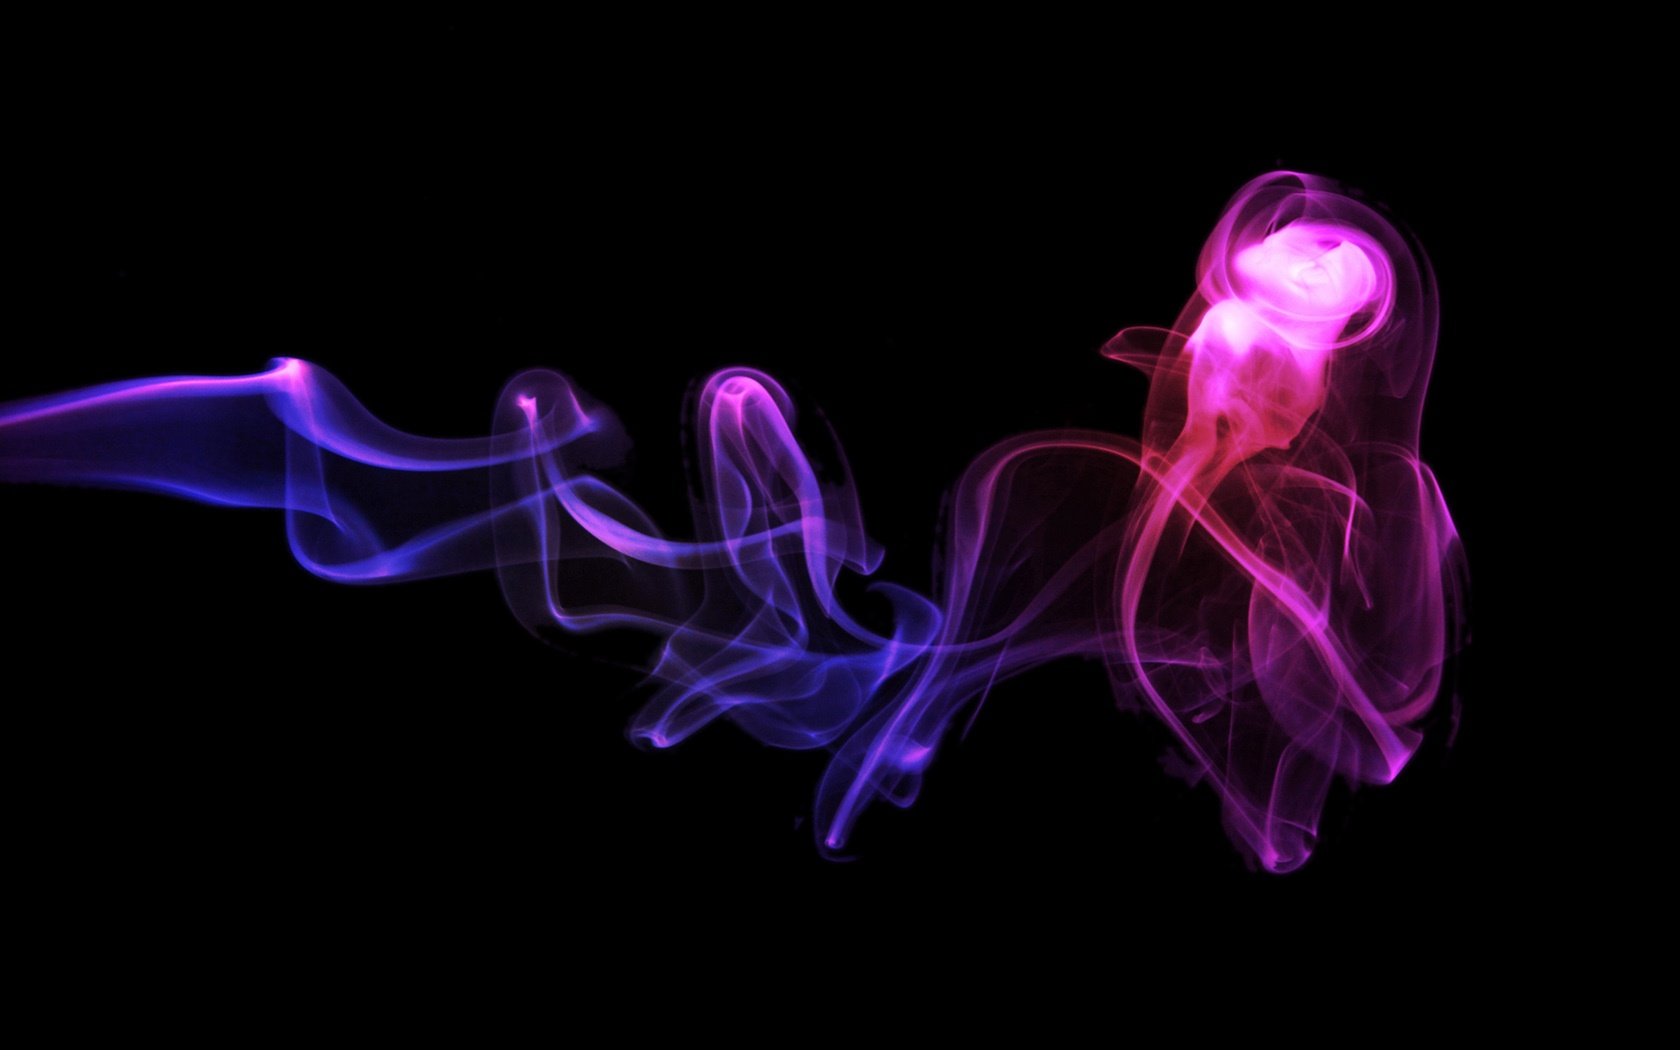 abstract wallpapers hd purple pink smoke